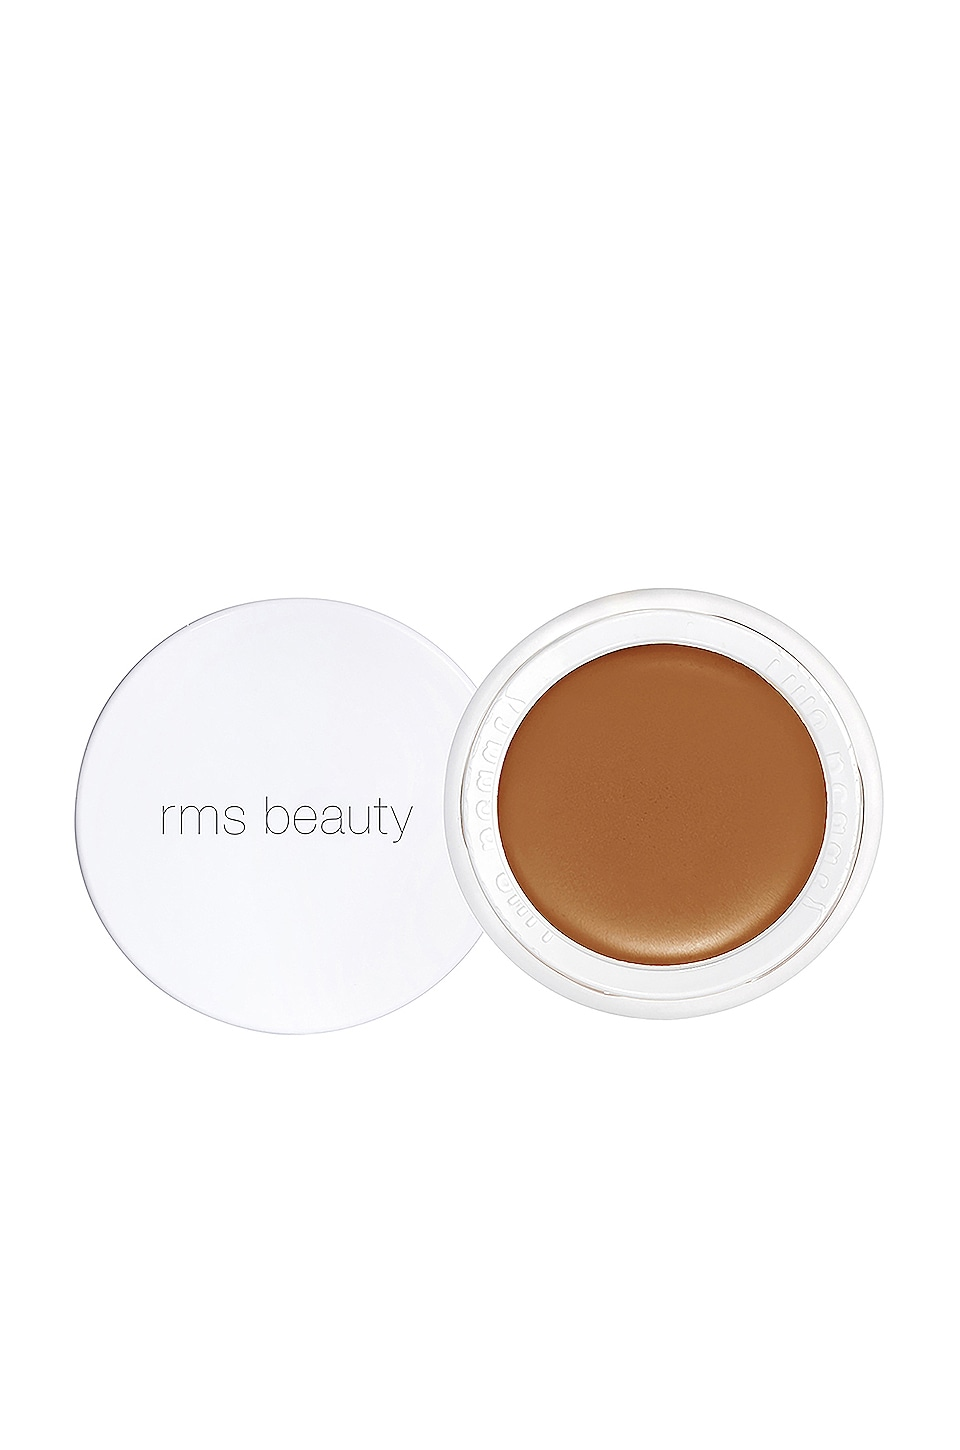 RMS Beauty Uncover Up in 88